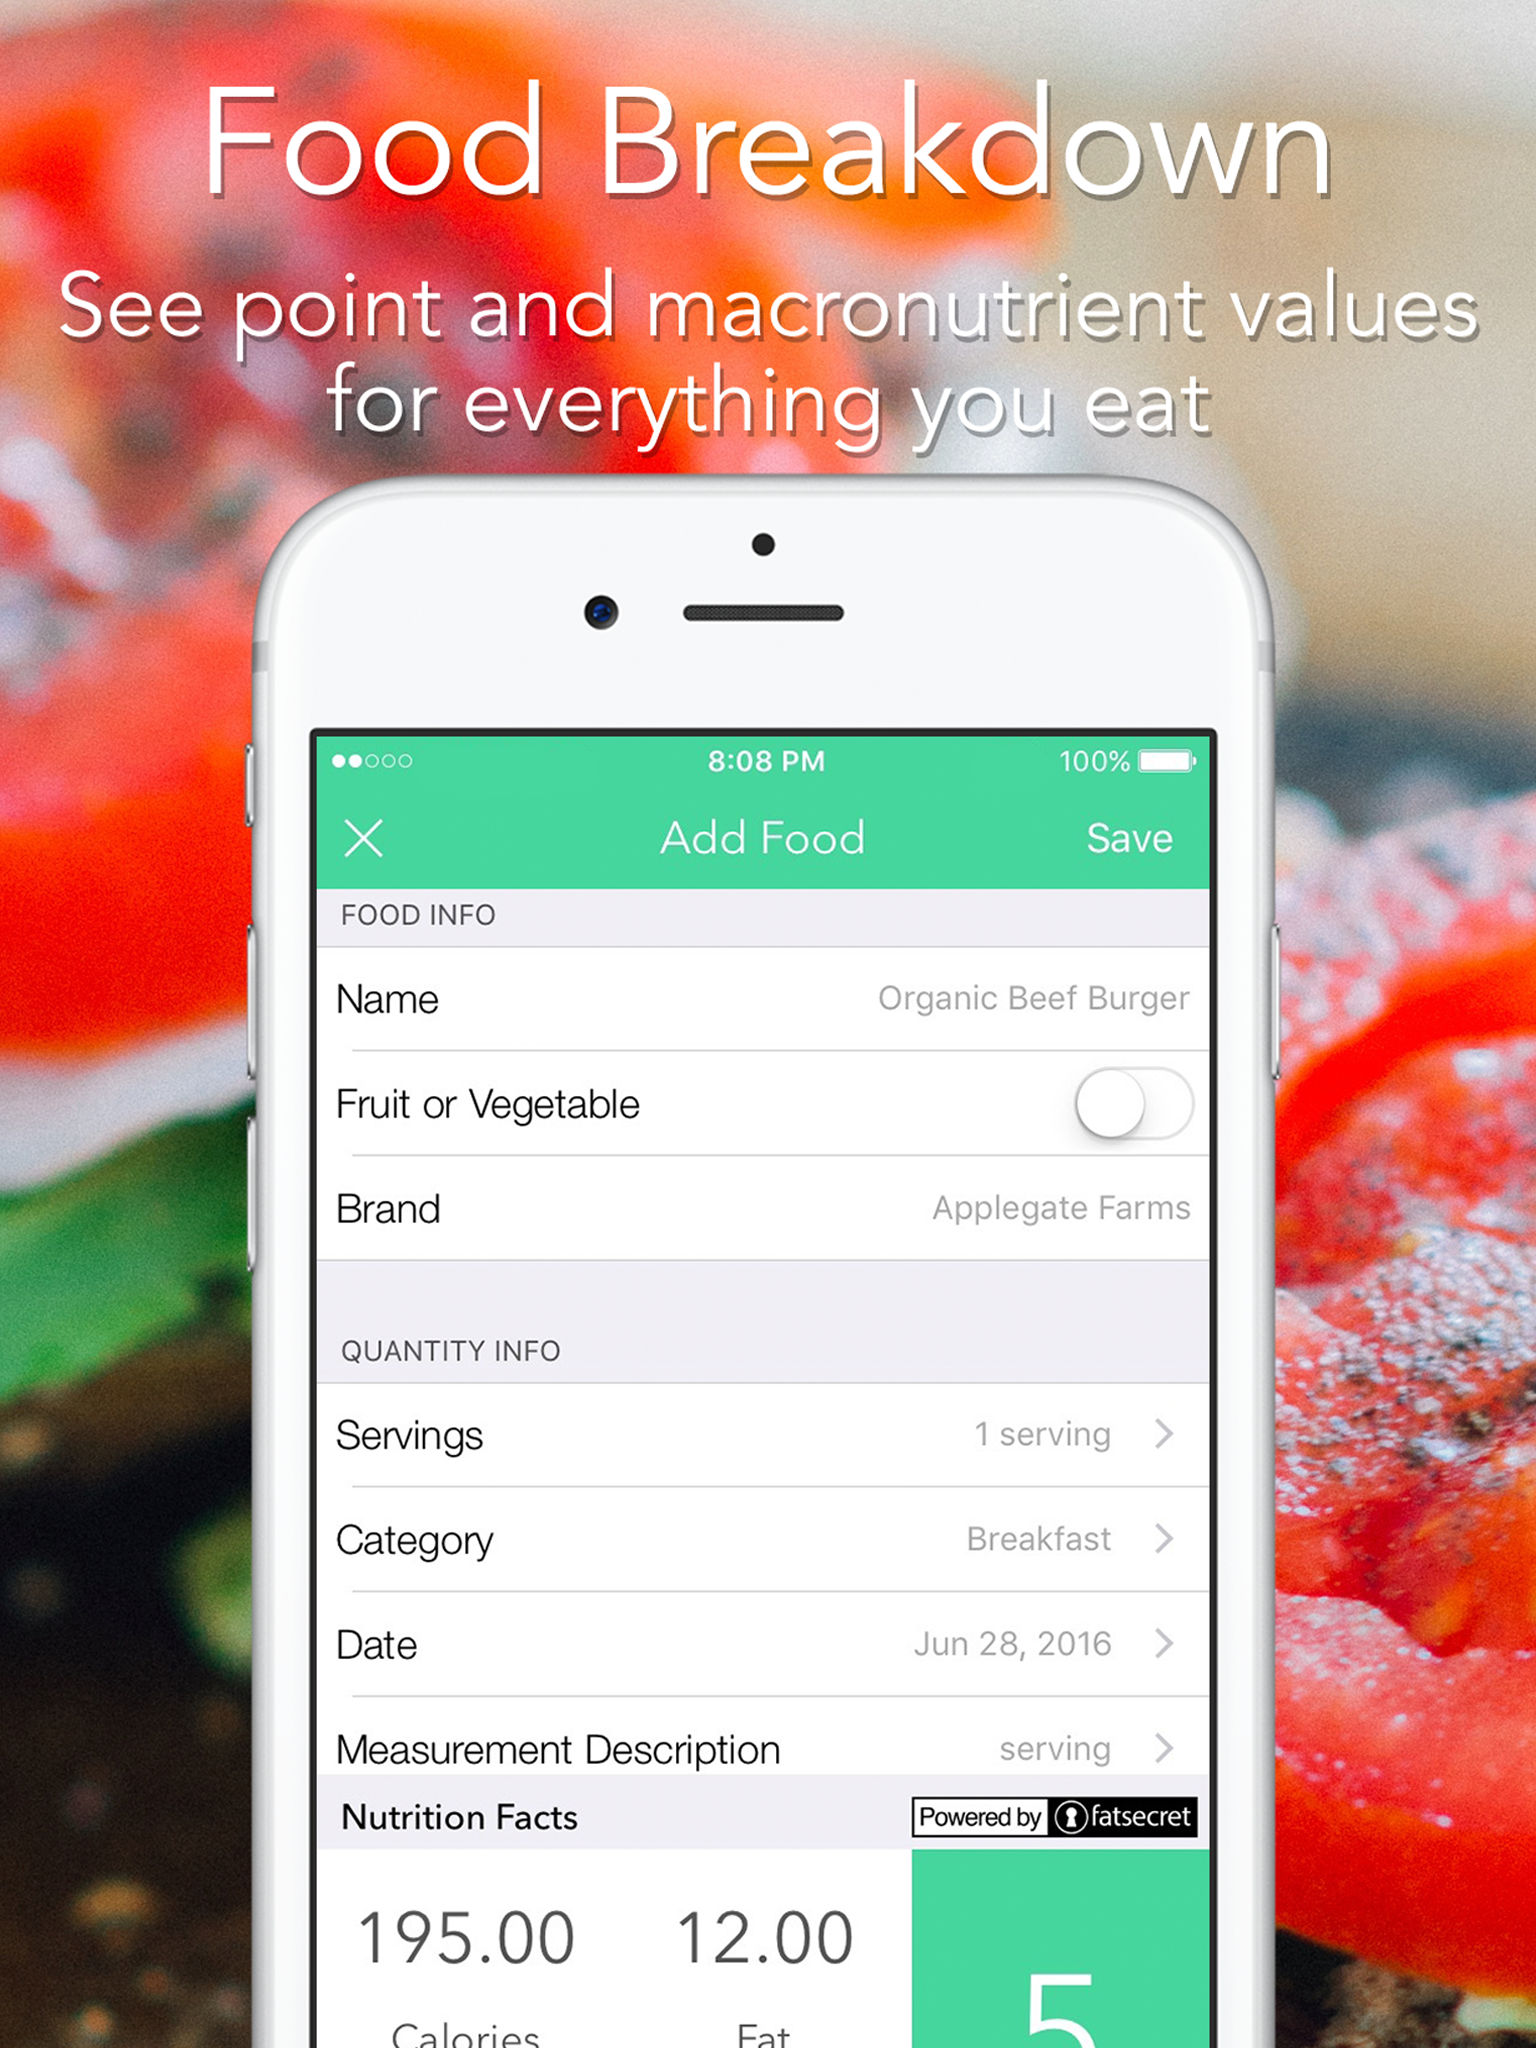 iMacro - Diet, Weight and Food Score Tracker App Ranking and